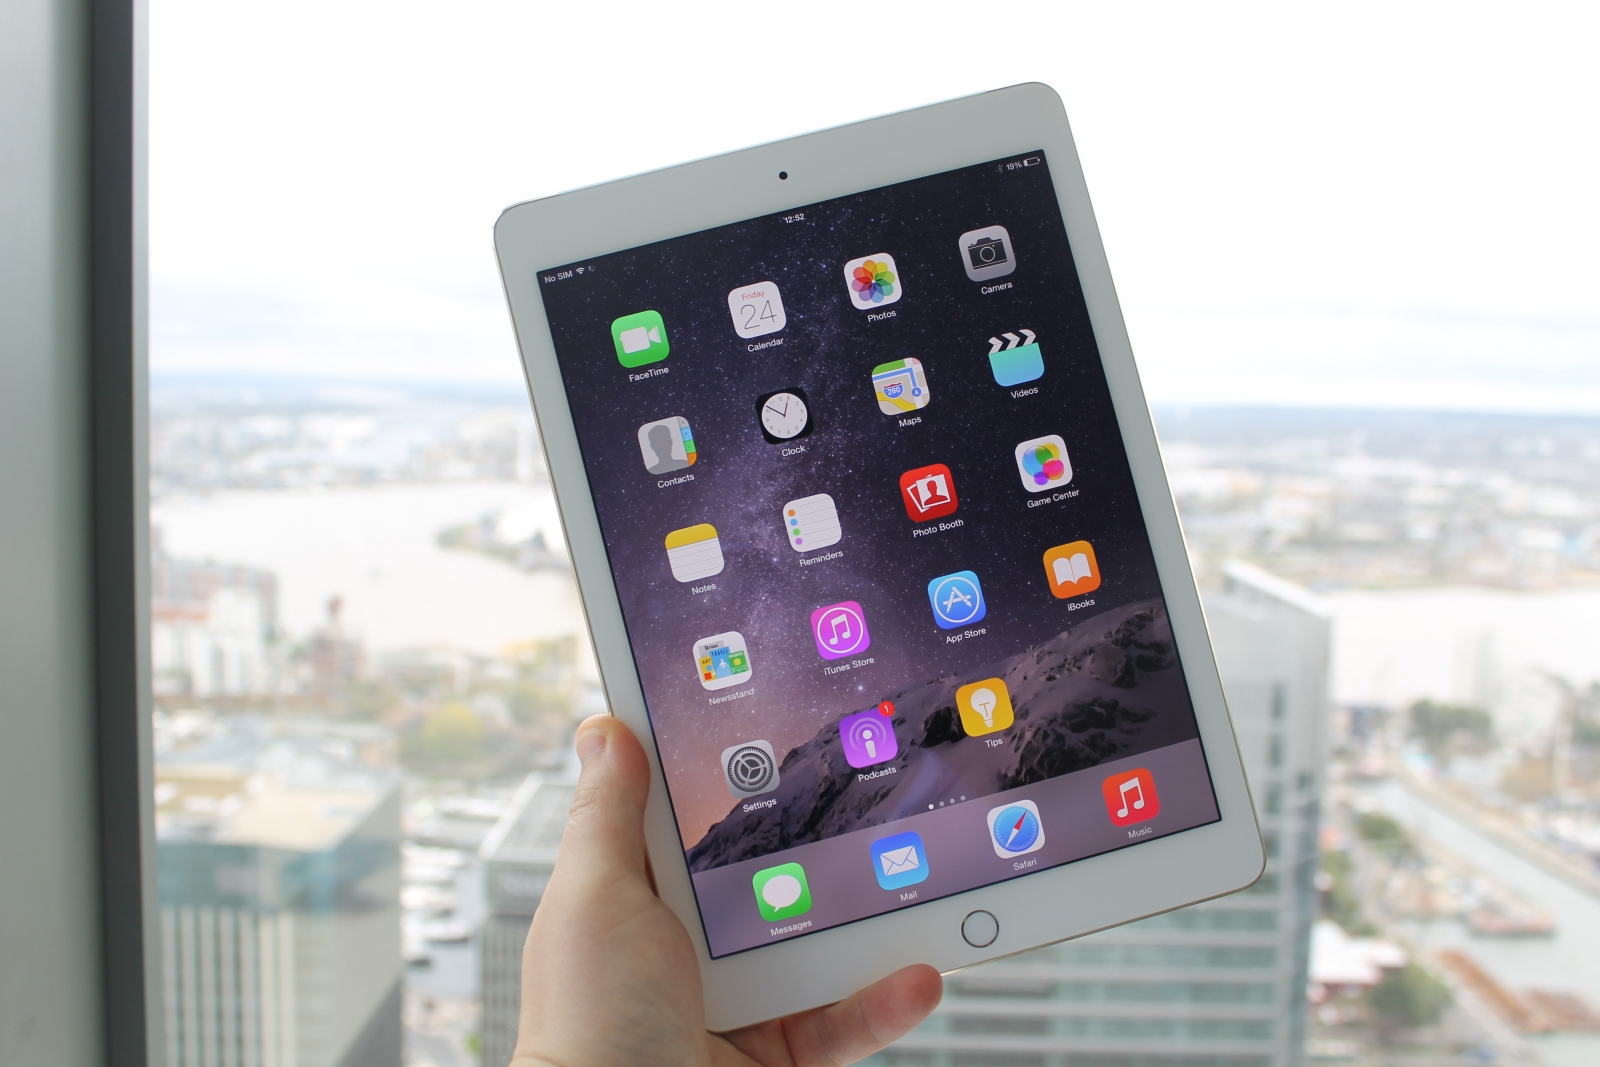 iPad Air 2 Review - Apple's Best Tablet Yet May Not be Good Enough